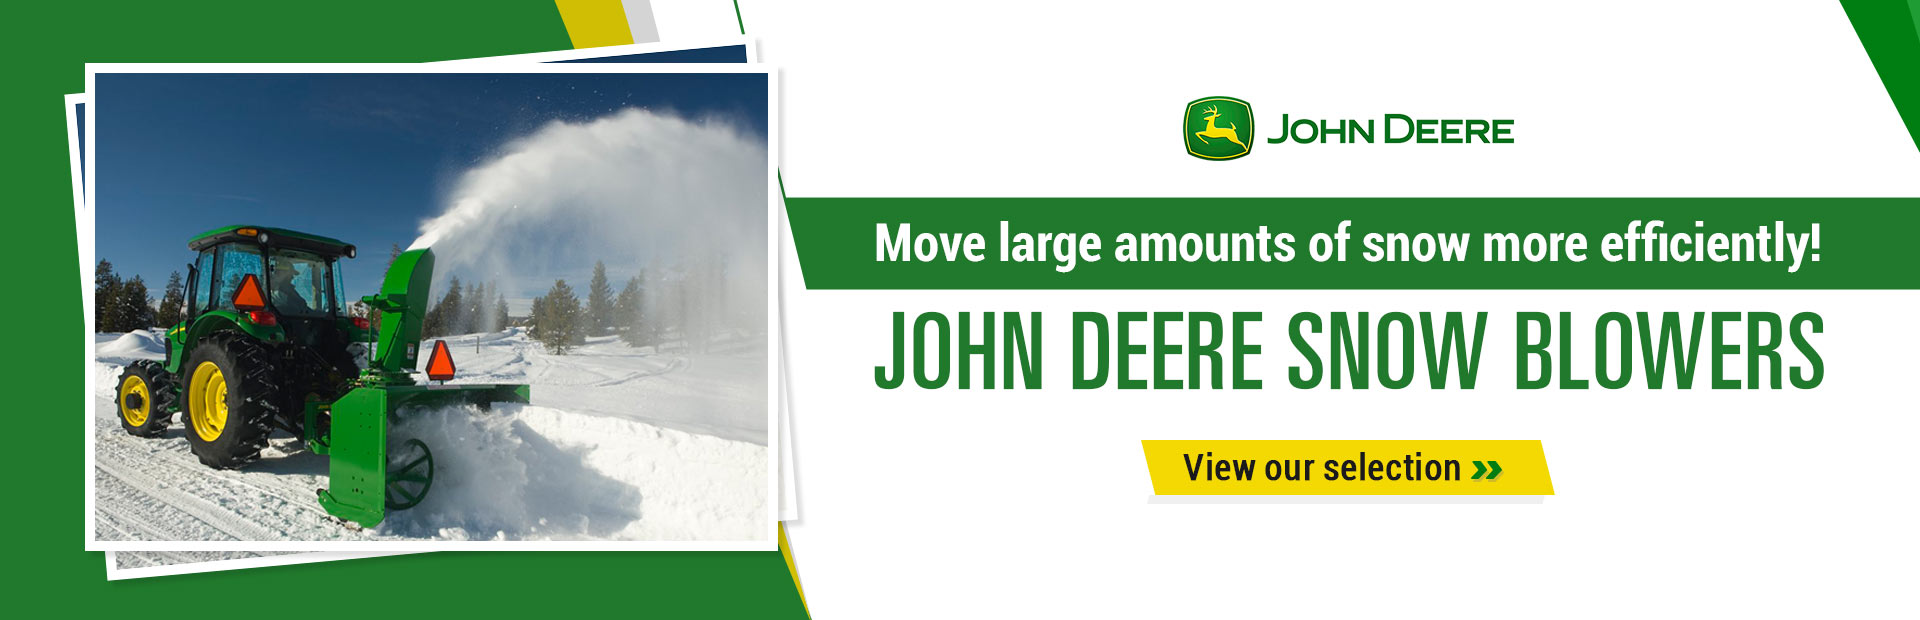 John Deere Snow Blowers: Move large amounts of snow more efficiently!